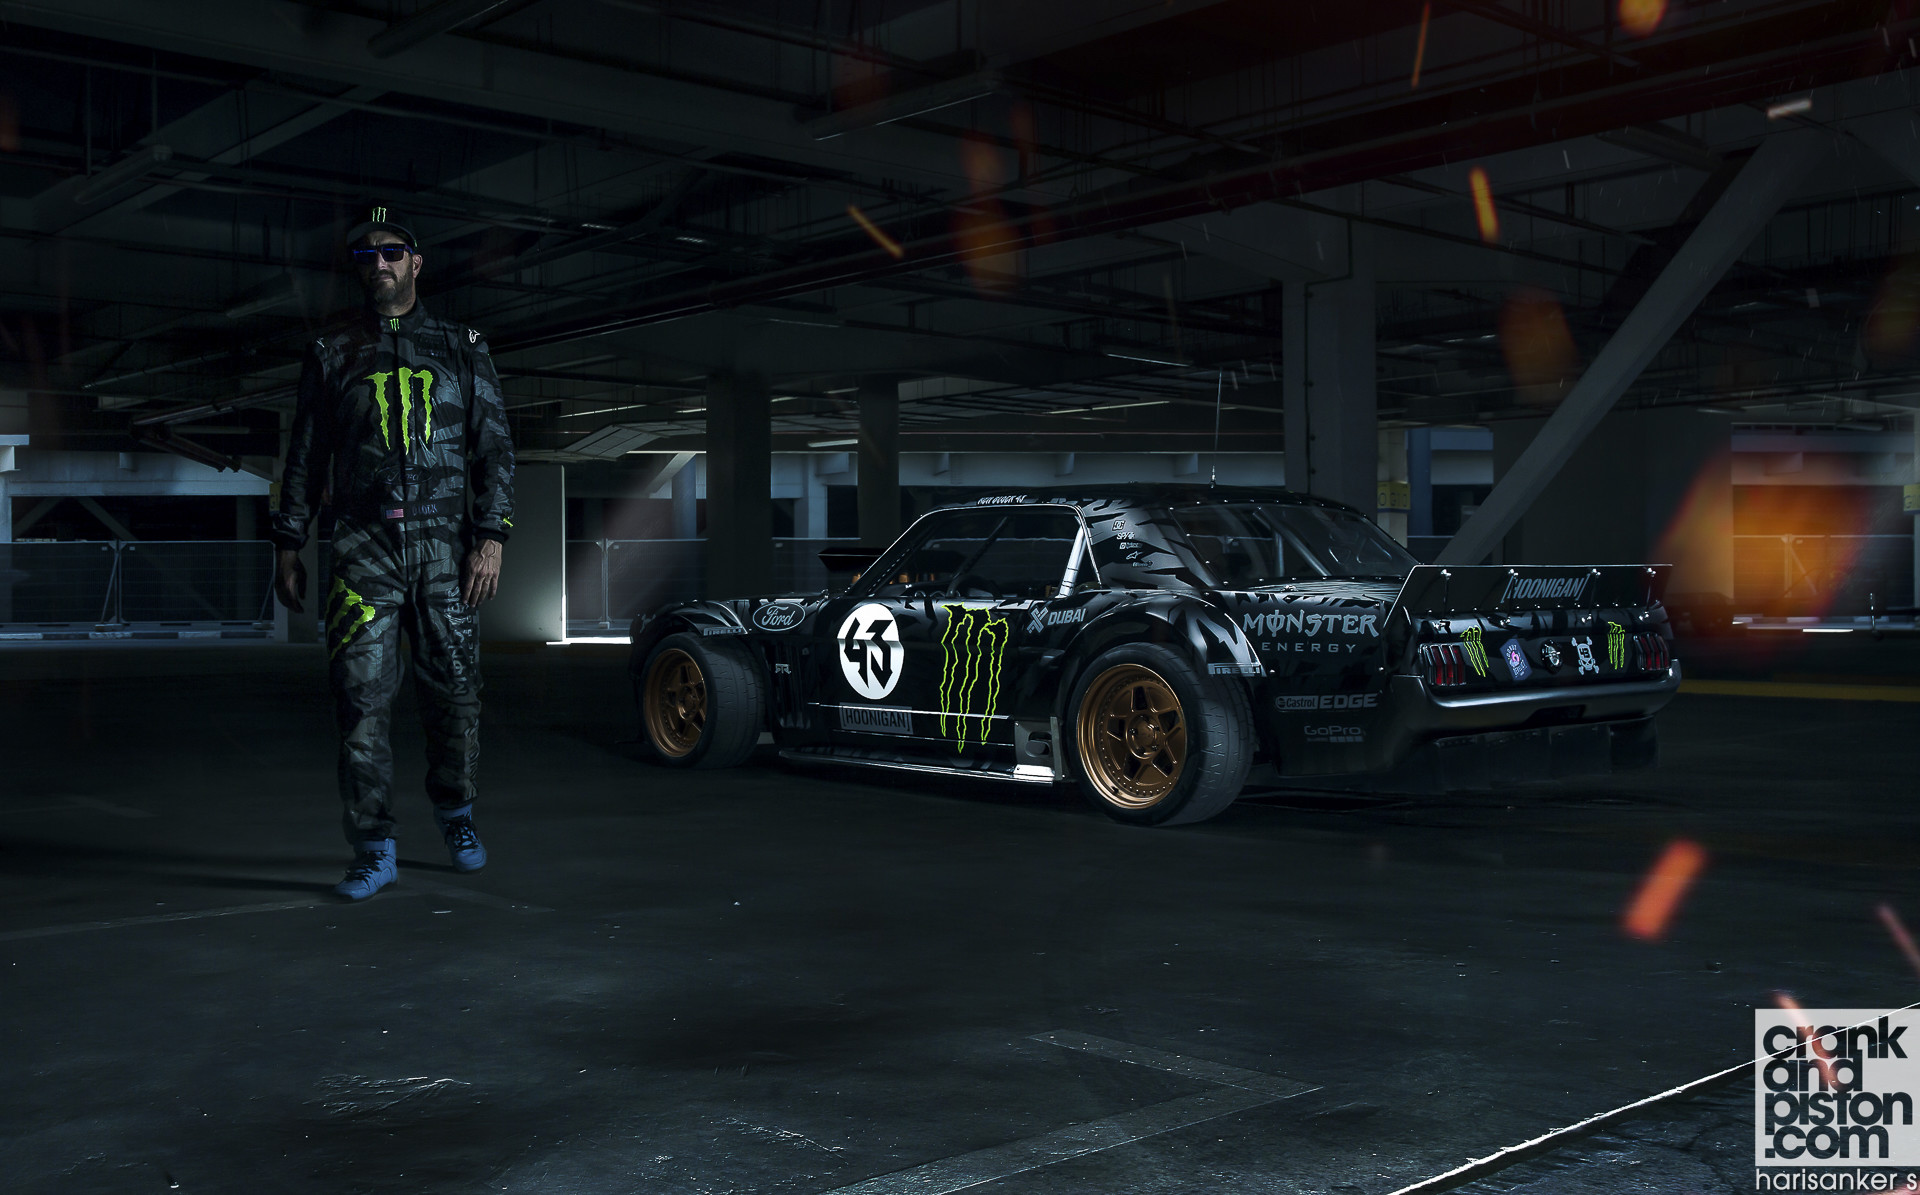 1920x1195 ... Poster Heroes Ken Block's Hoonicorn-1a. Categories: Wallpapers